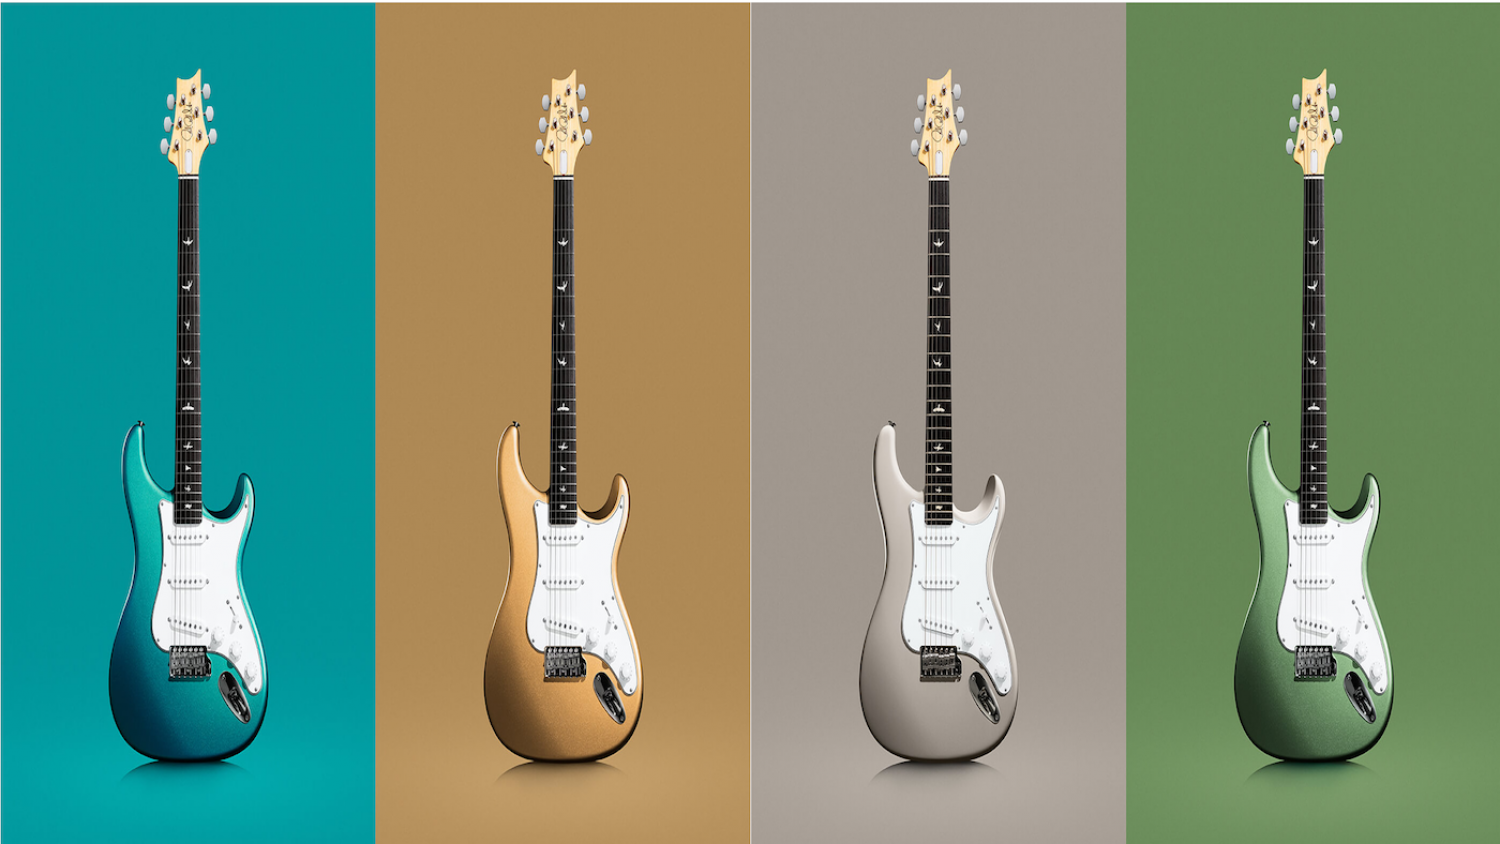 Prs Guitars Announces 4 New Colors For The John Mayer